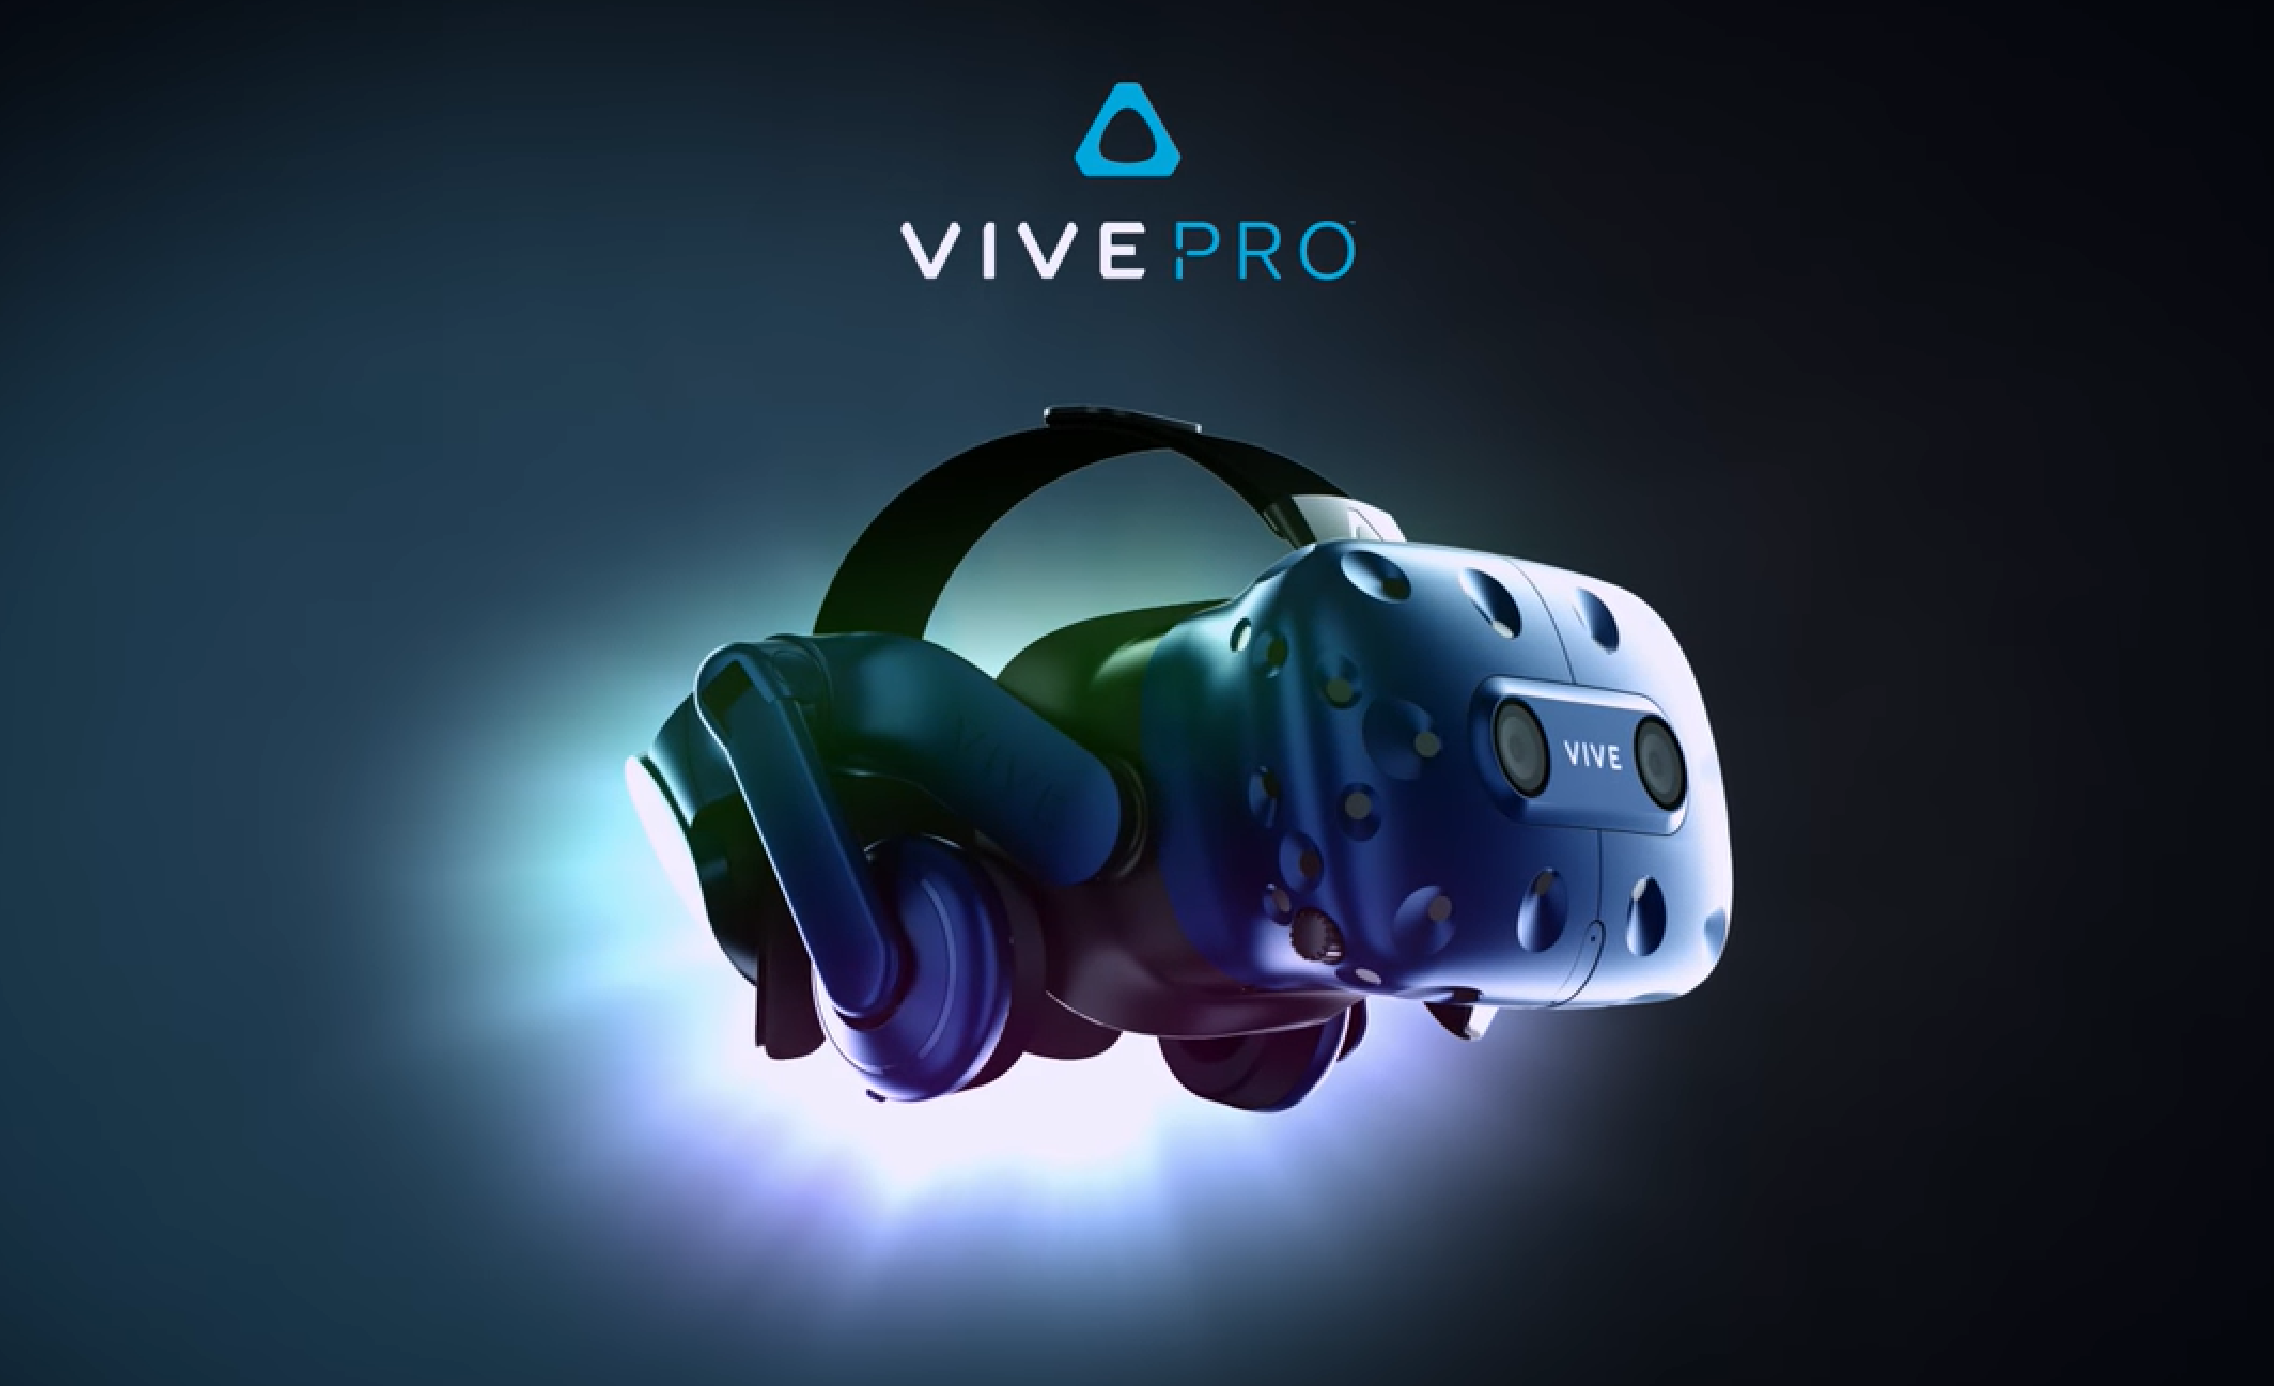 HTC's Vive Pro will add more pixels to an otherwise familiar-looking